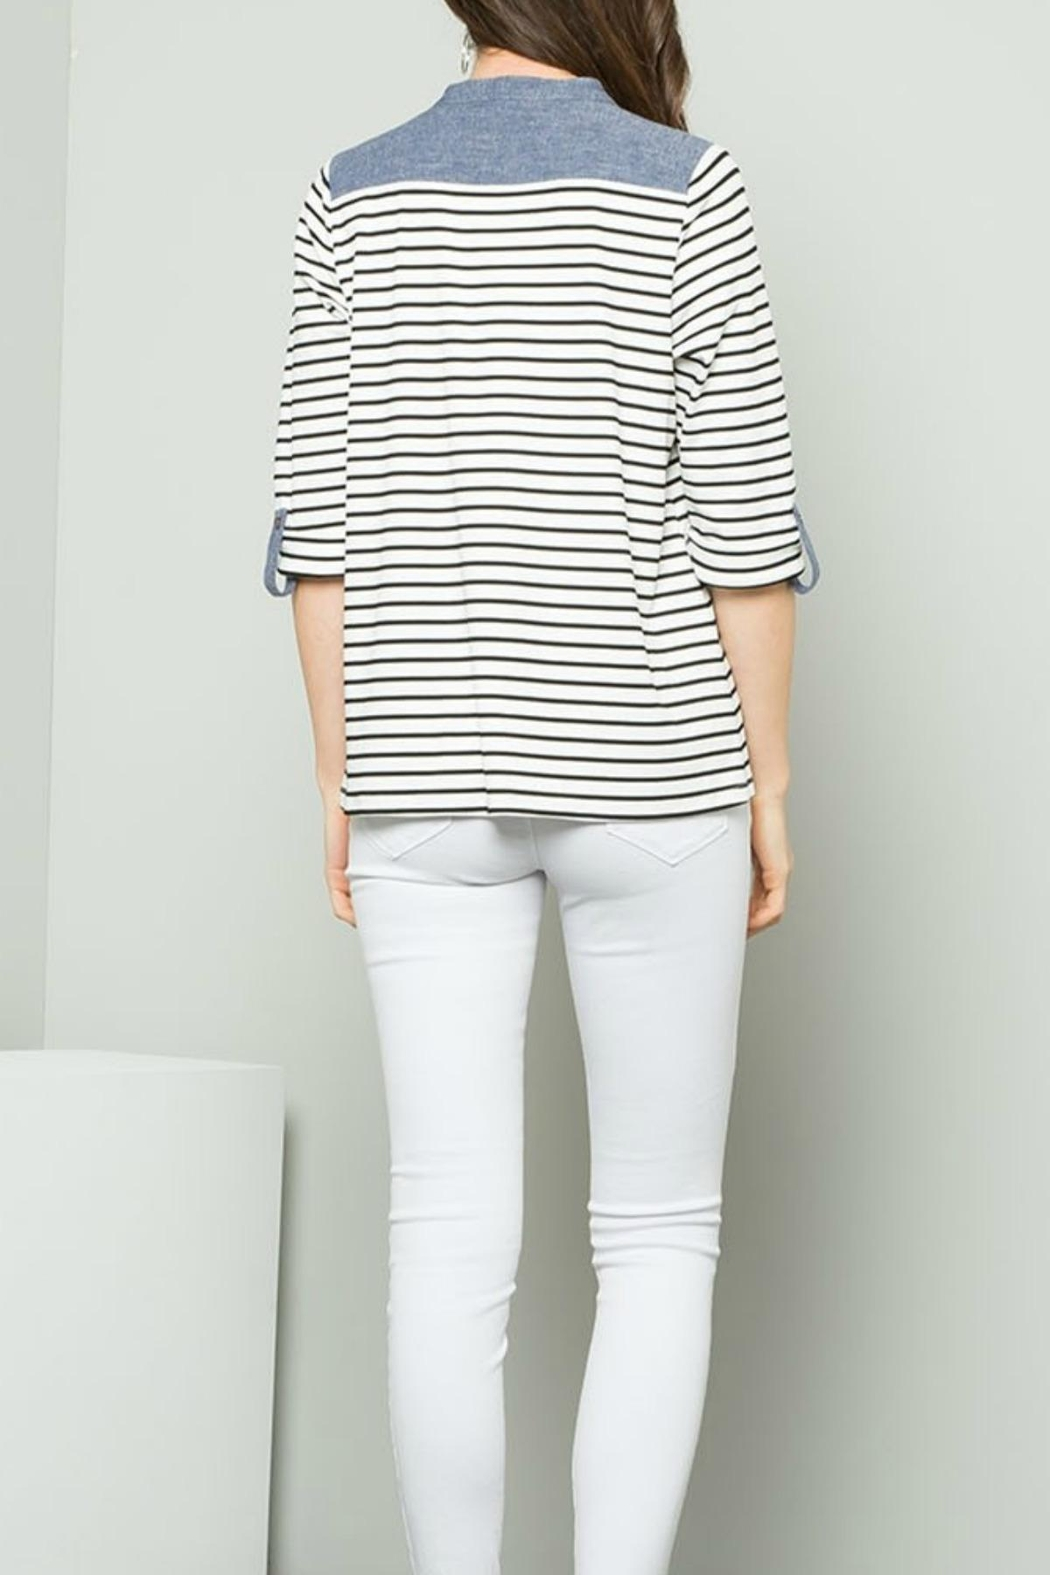 THML Clothing Striped Raglan Top - Front Full Image